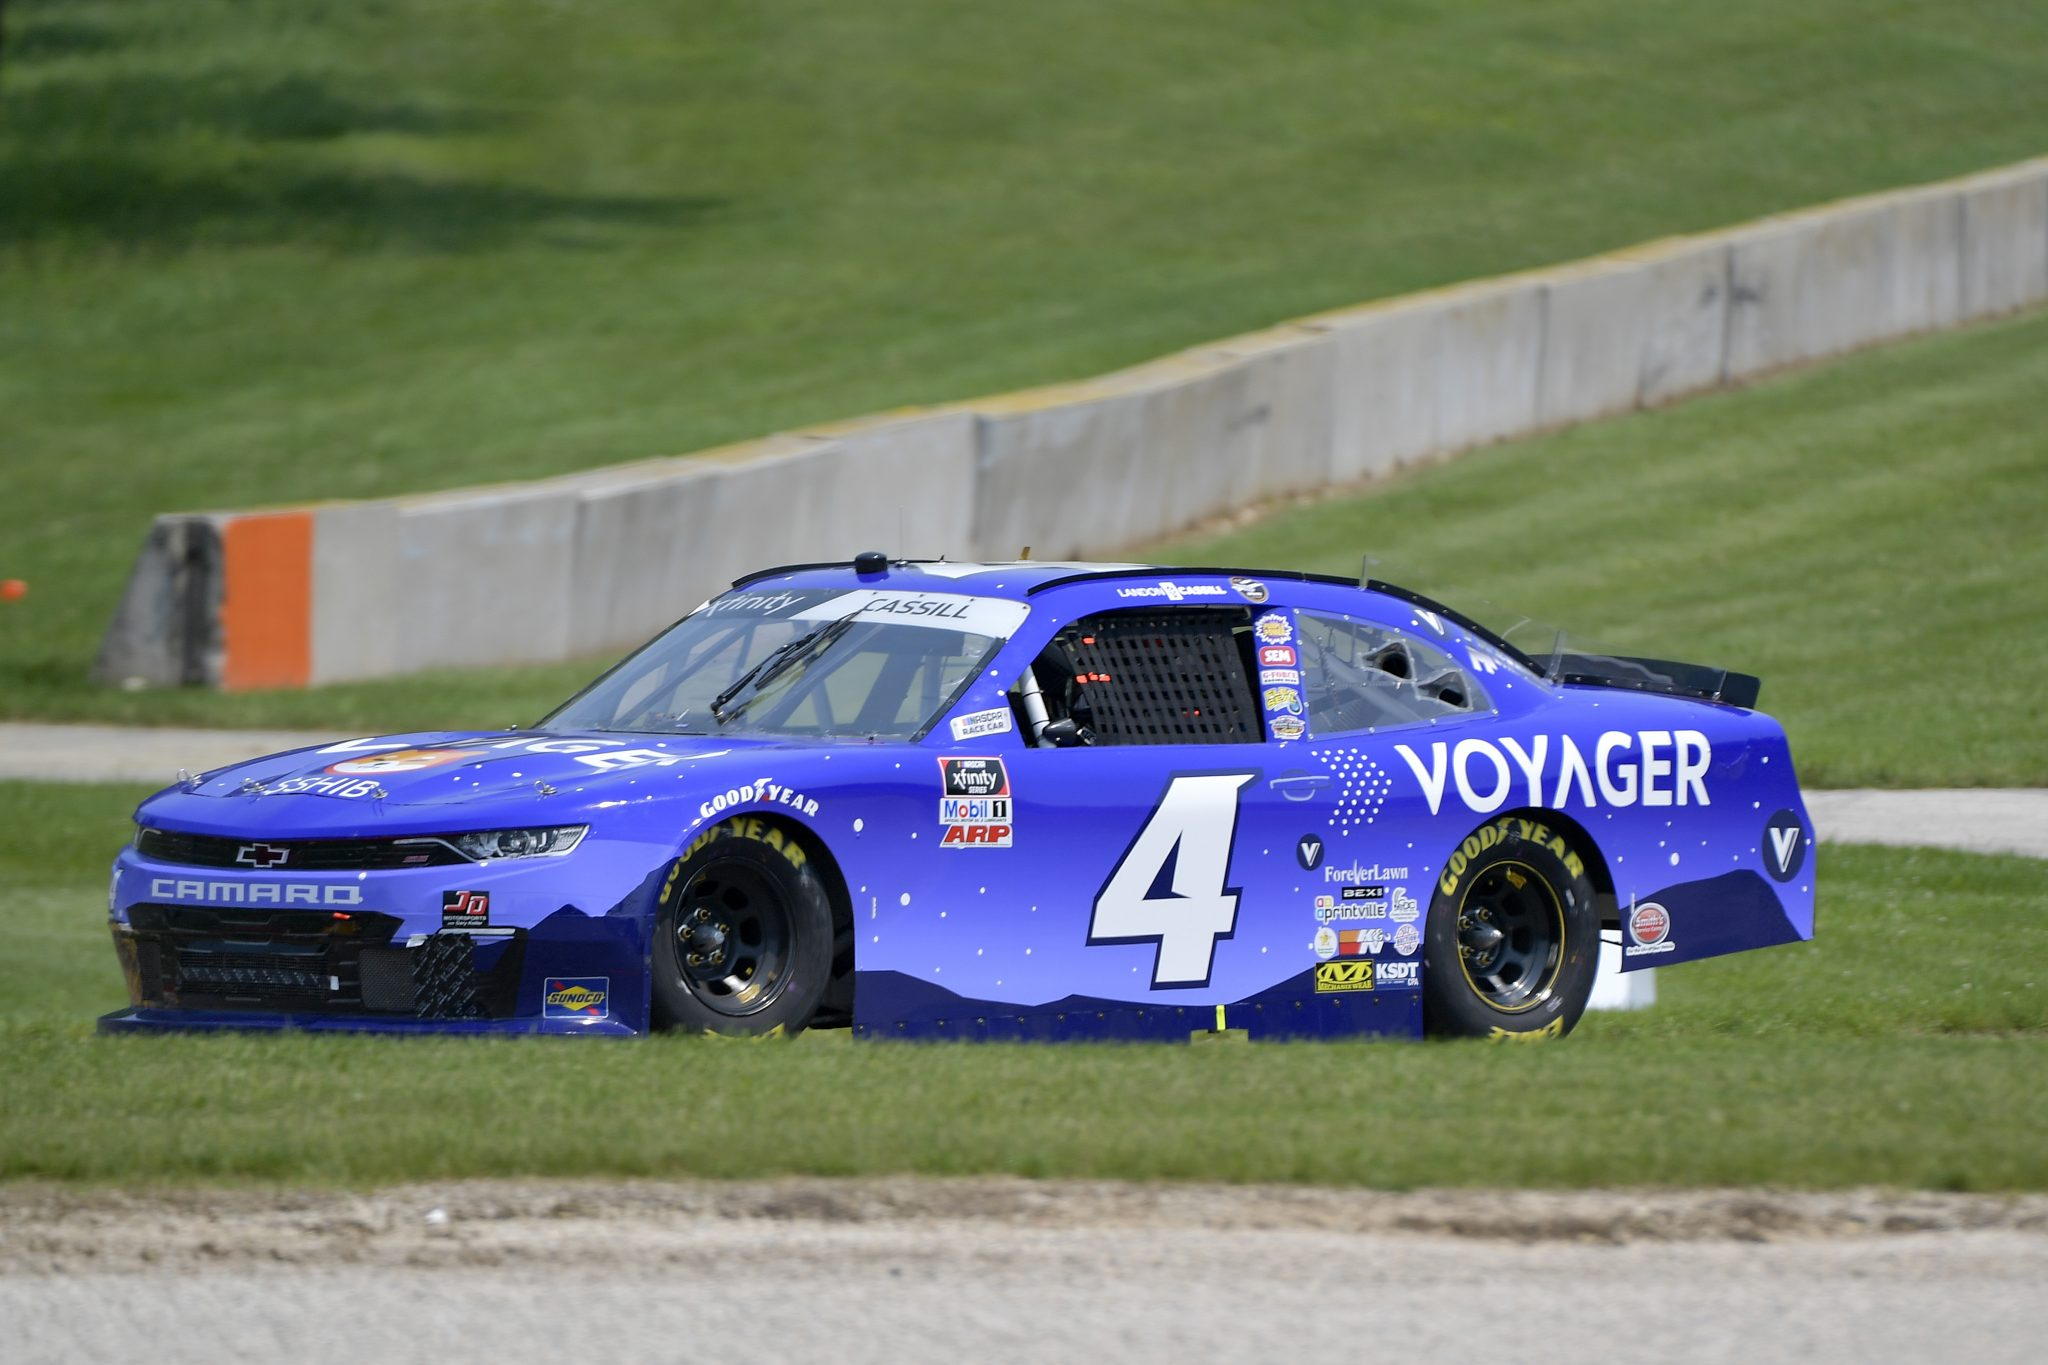 ELKHART LAKE, WISCONSIN - JULY 03: Landon Cassill, driver of the #4 Voyager Chevrolet, drives during the NASCAR Xfinity Series Henry 180 at Road America on July 03, 2021 in Elkhart Lake, Wisconsin. (Photo by Logan Riely/Getty Images)   Getty Images